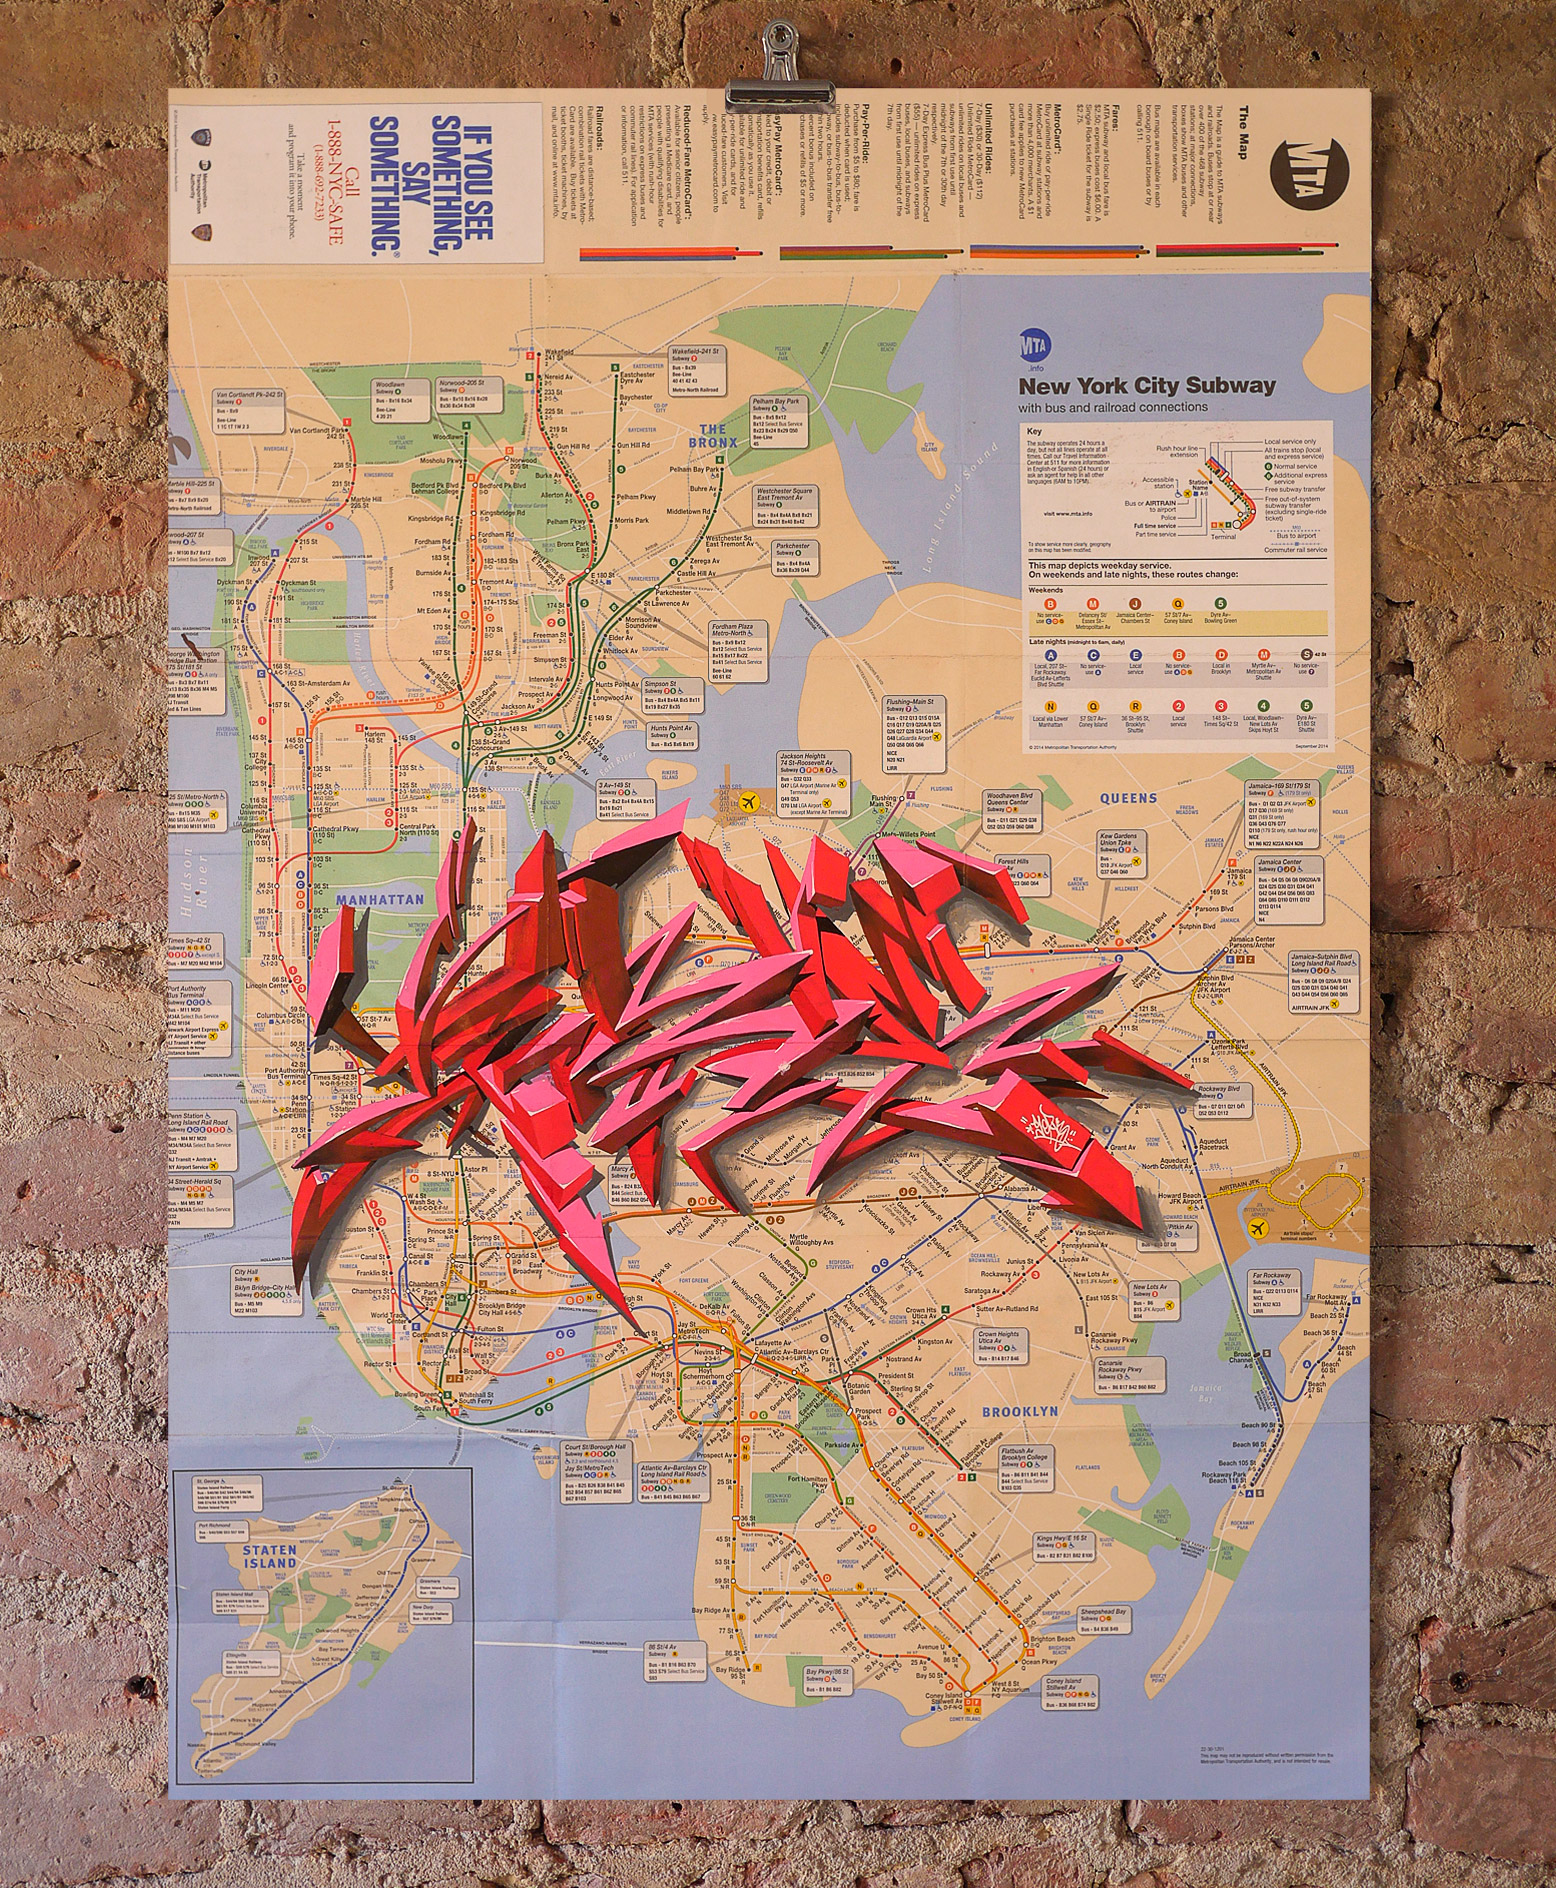 NYC Subway Map   Wildstyle by Serve   Nelly Duff NYC Subway Map     Wildstyle by Serve   For sale at Nelly Duff